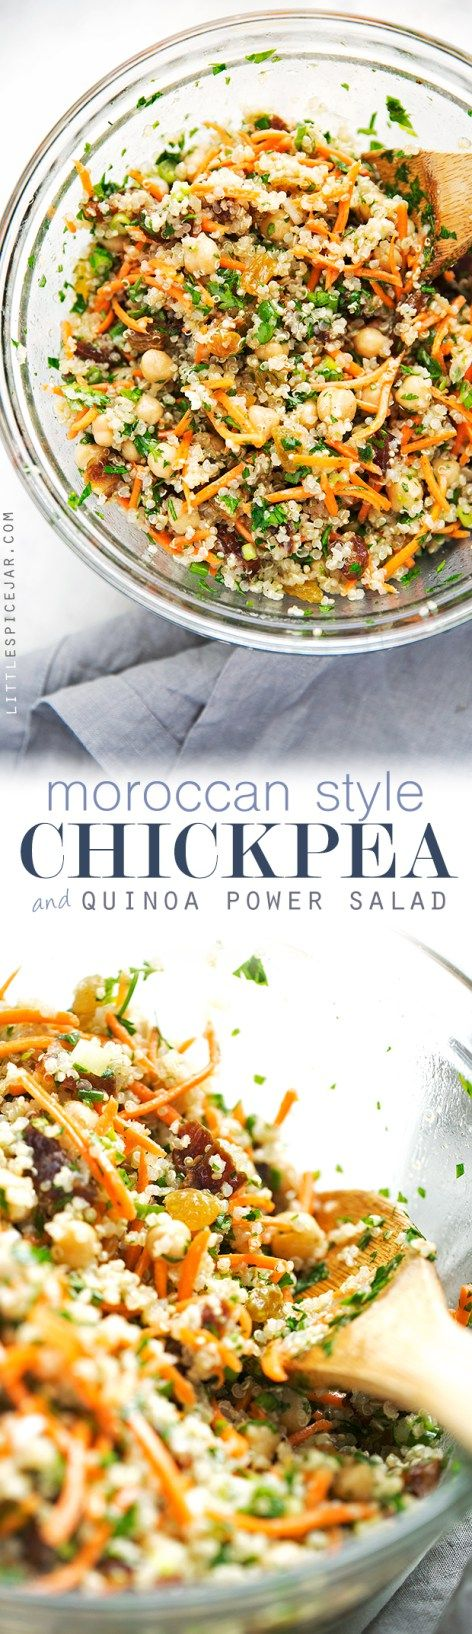 5fa153c4c0c535b13b0f42b7064e093a  moroccan chickpea salad moraccan salad Moroccan Chickpea Quinoa Power Salad   A quick salad loaded with sooo much flavo...